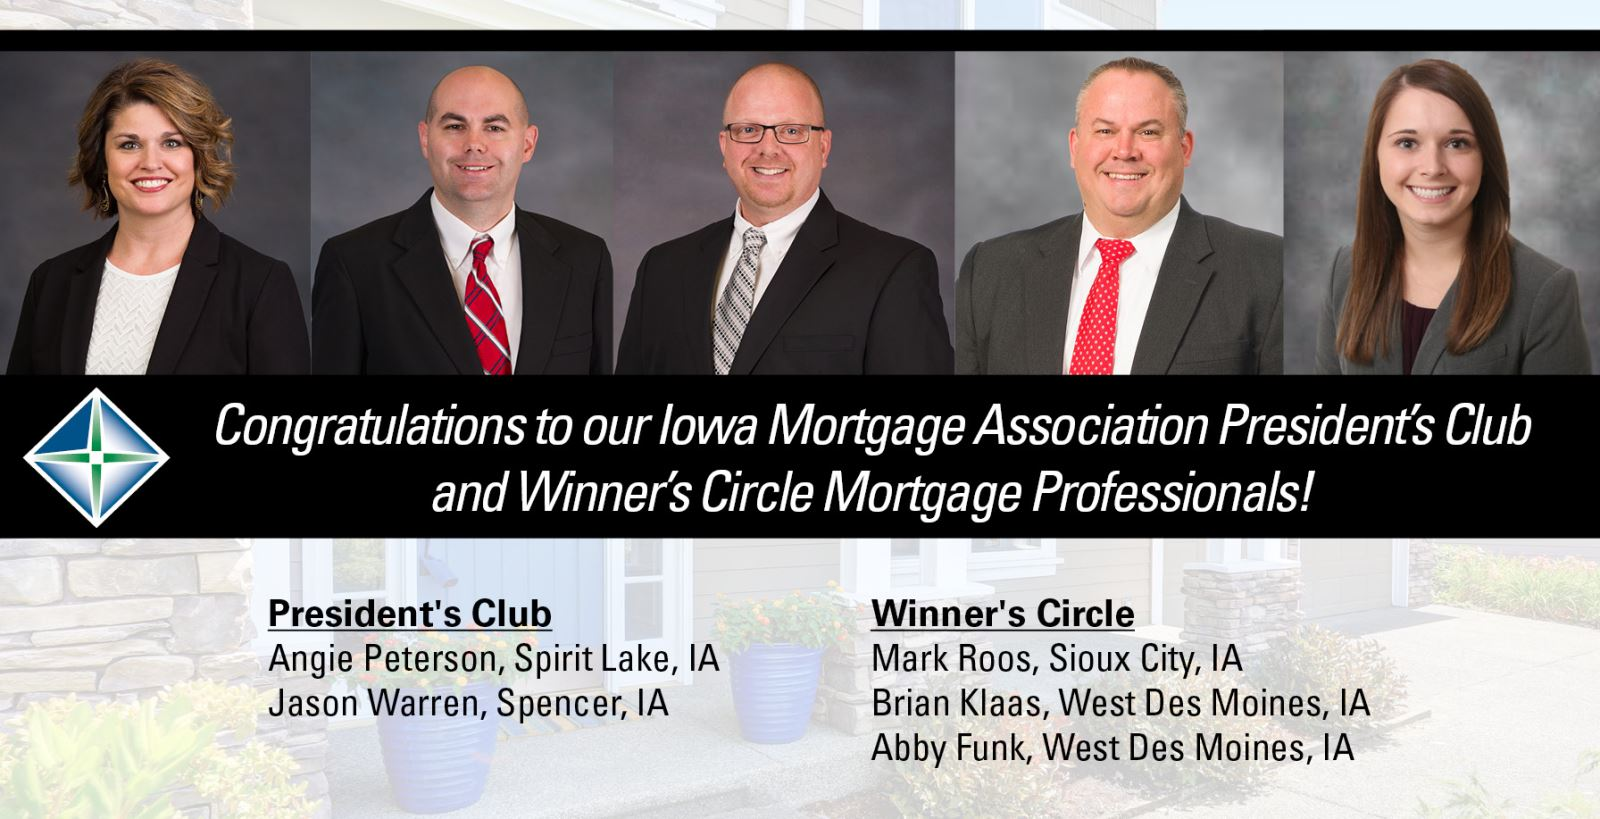 Images of our Presidents and Winner circles mortgage bankers